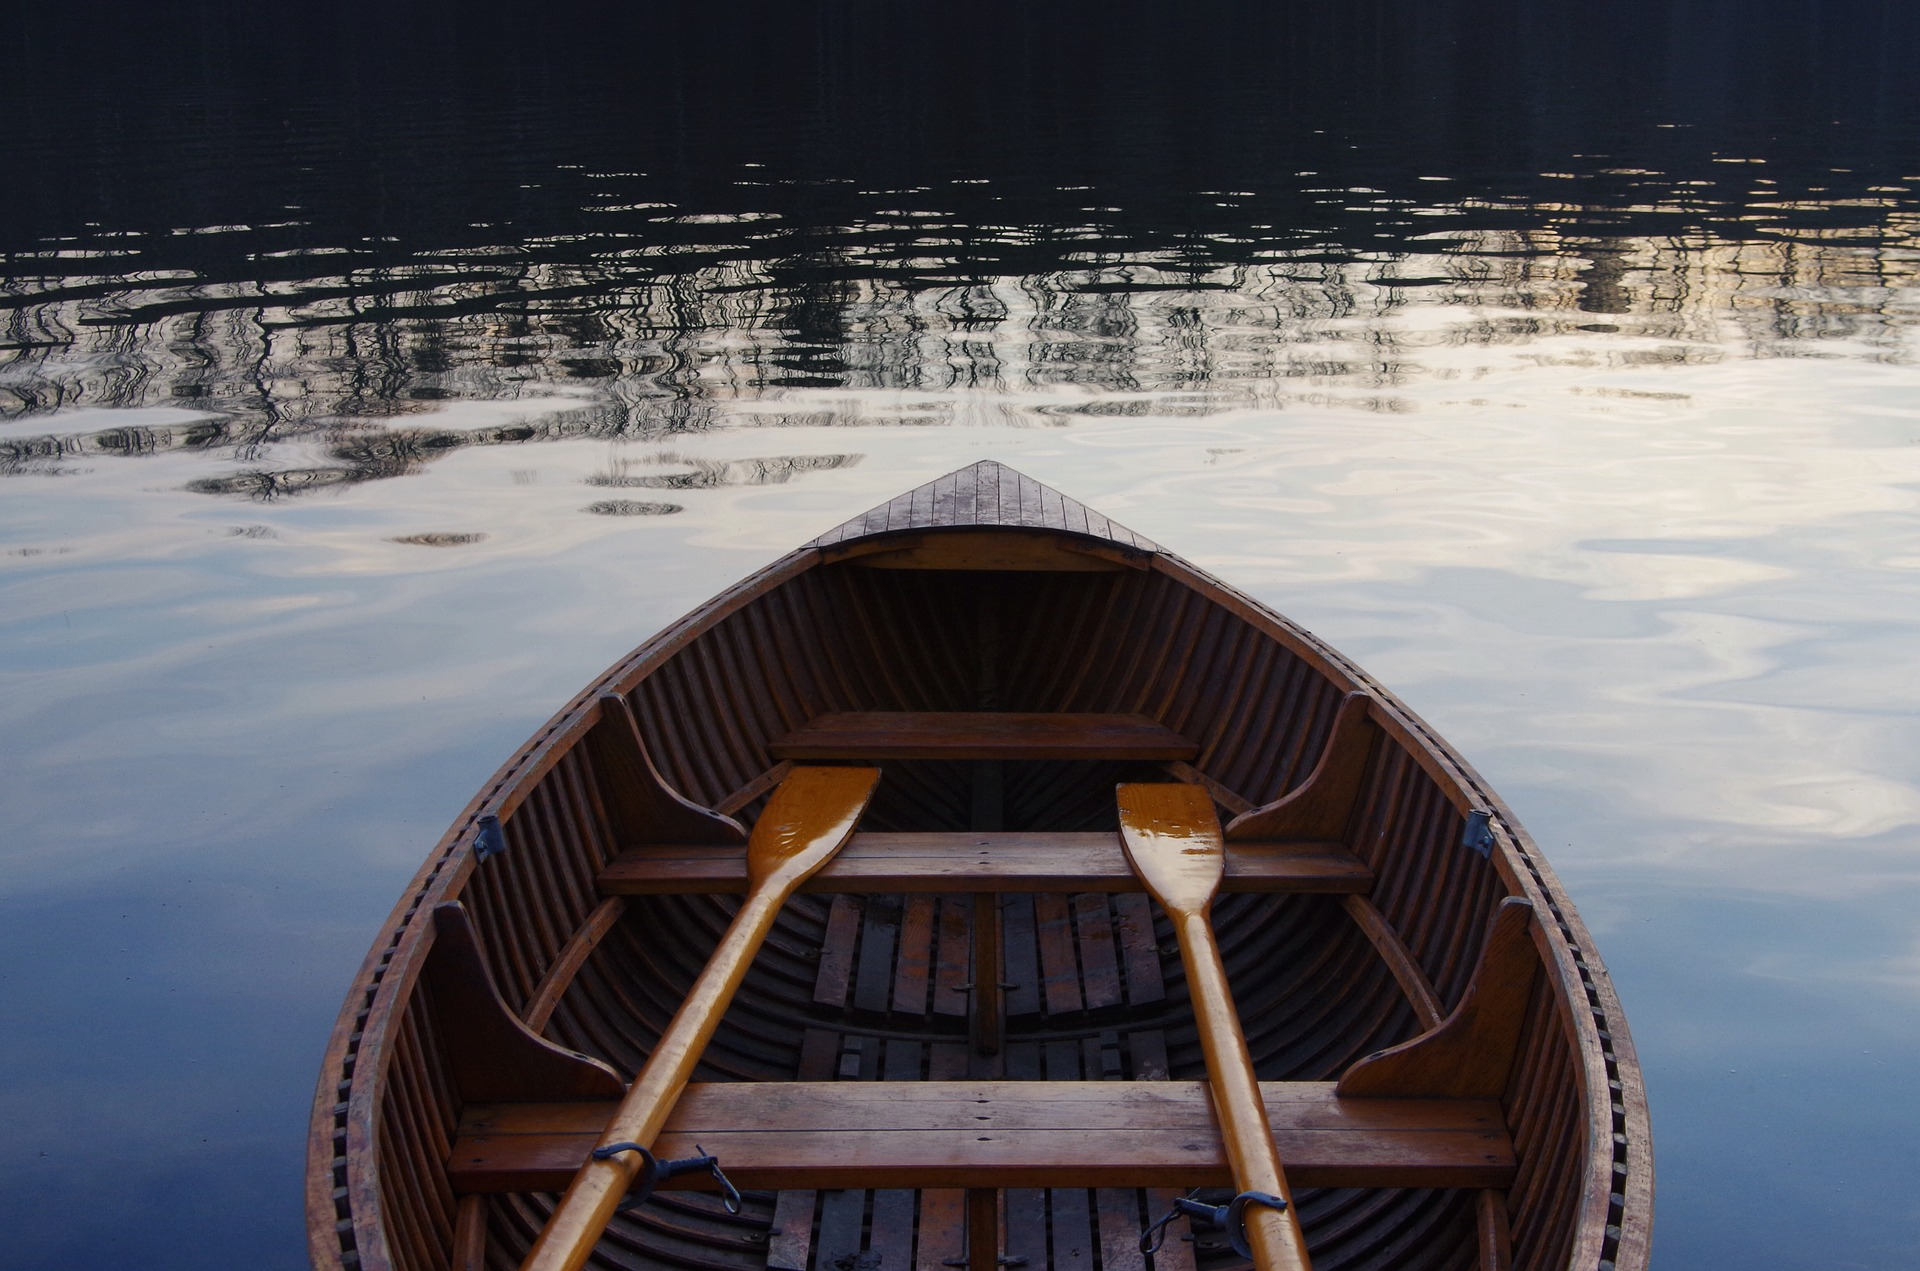 A traditional rowing boat on the water.